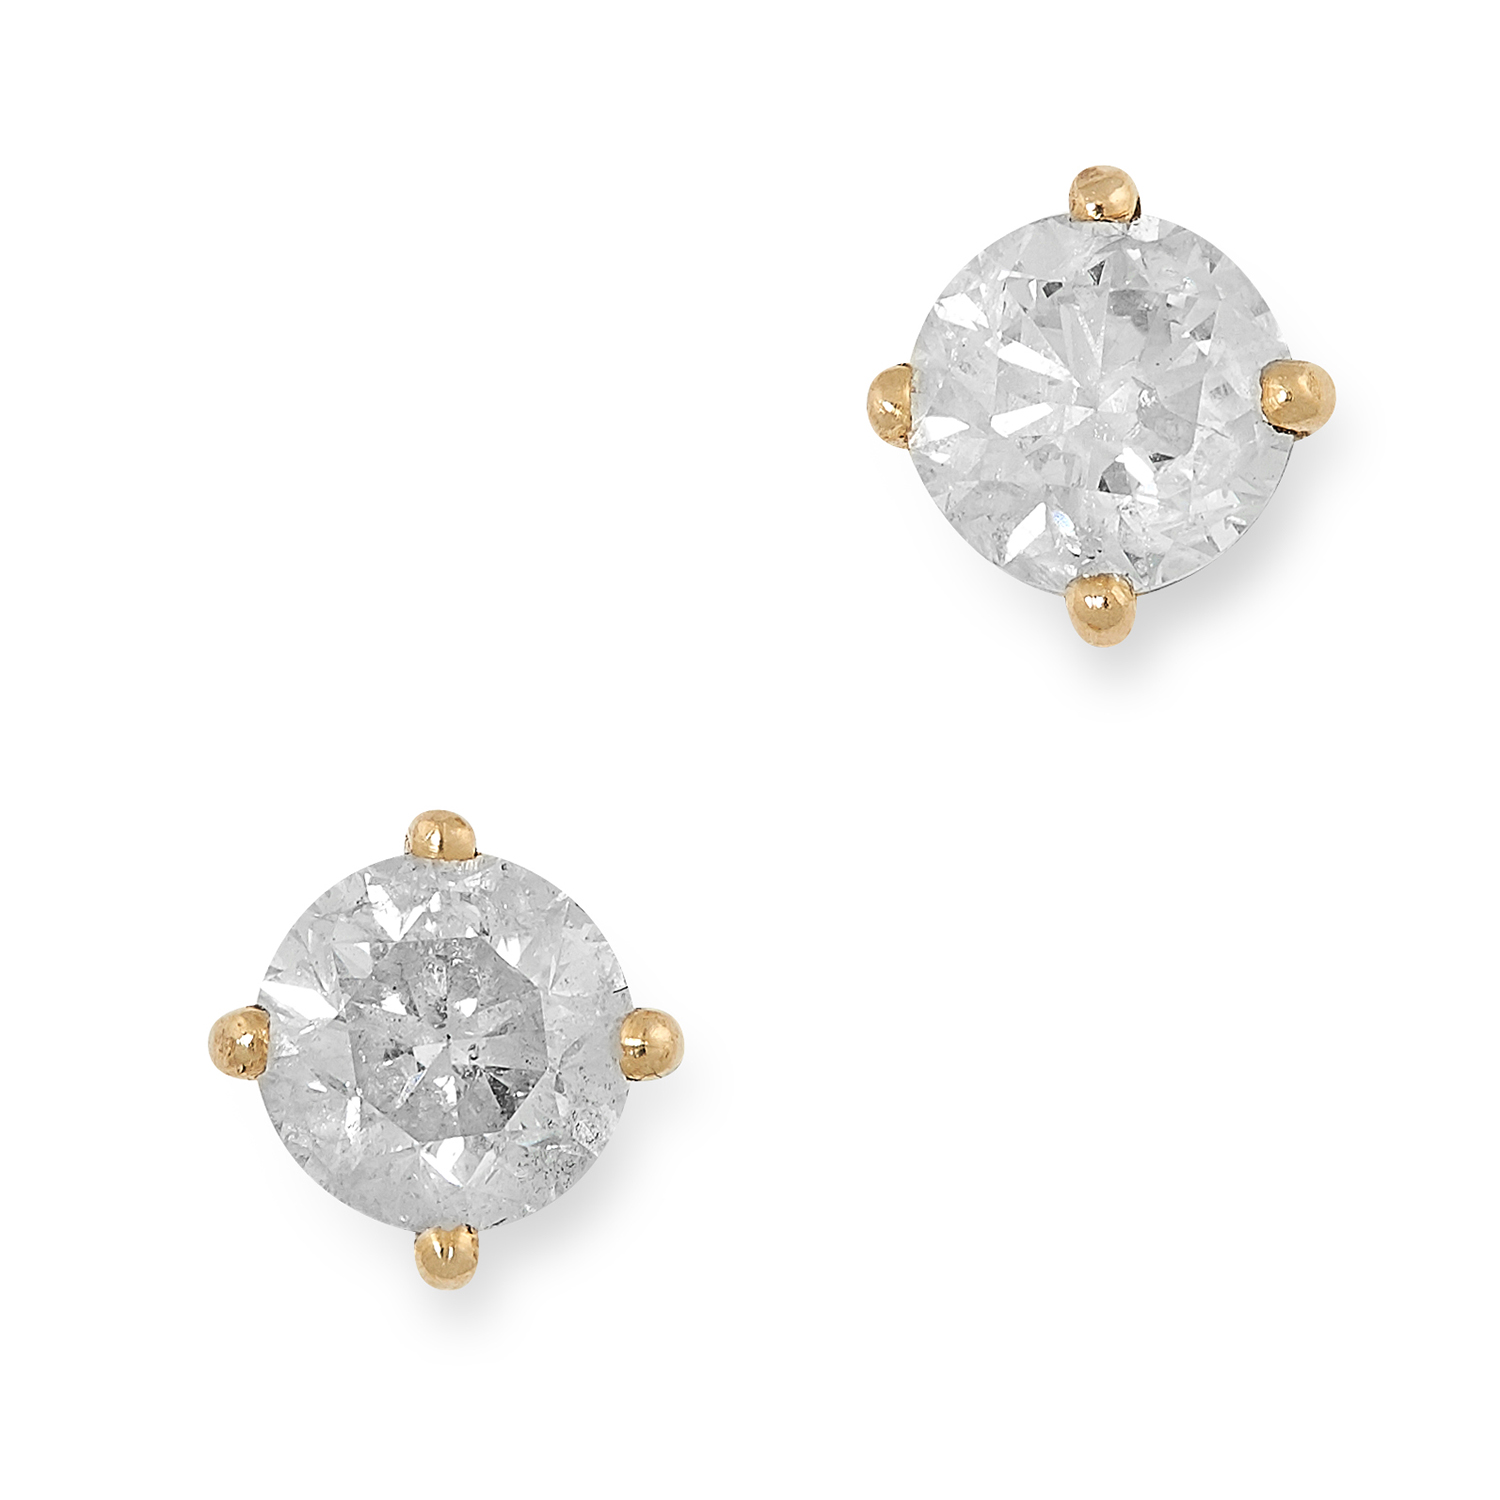 Los 5A - A PAIR OF 2.0 CARAT DIAMOND STUD EARRINGS each set with a round brilliant cut diamond of 1.0 carats,